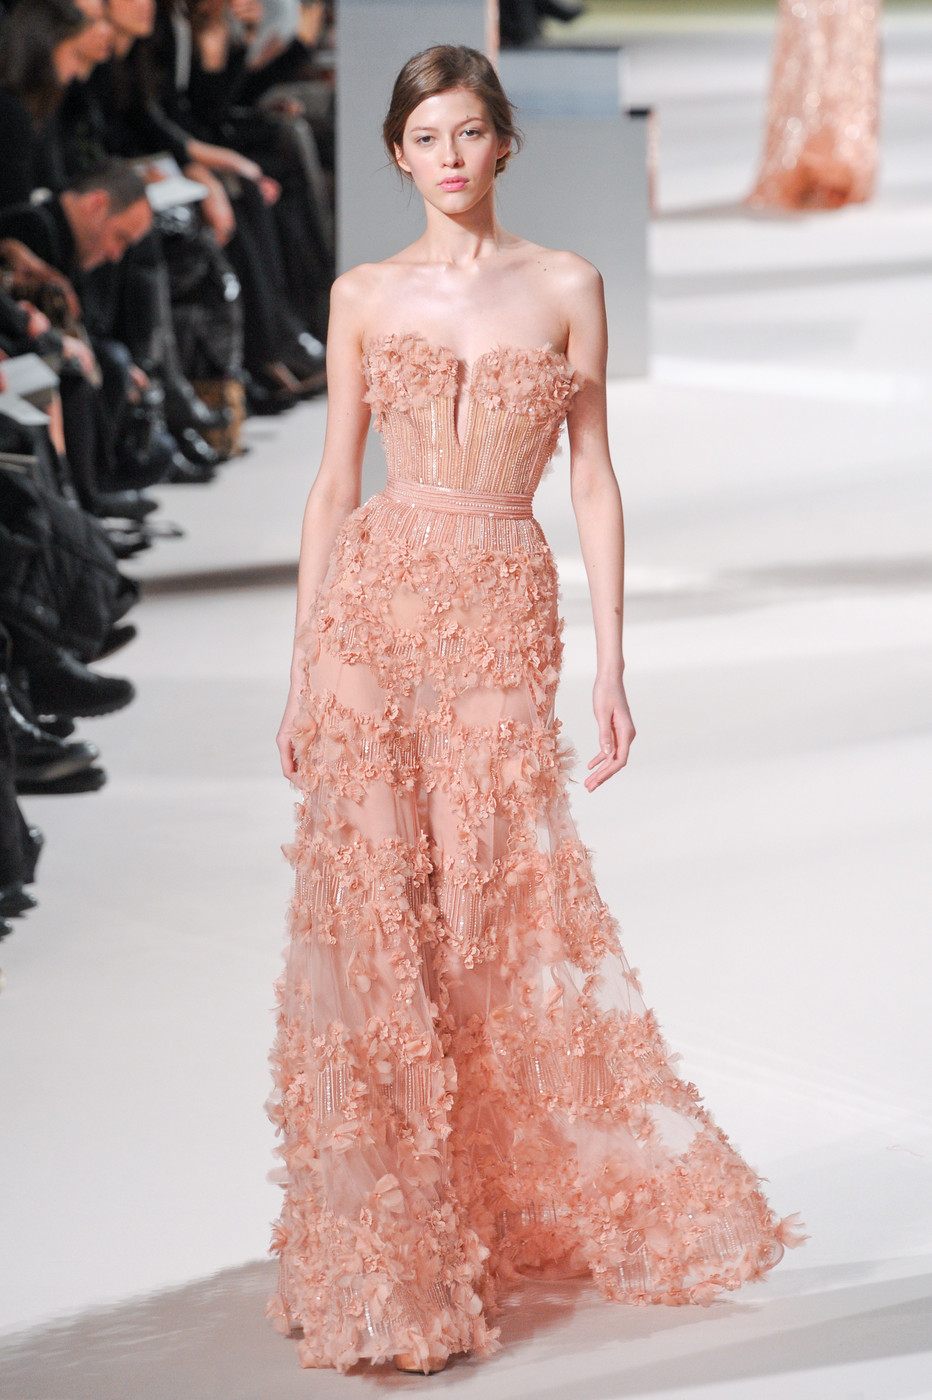 via fashioned by love | Photo source: Elie Saab Couture Spring/Summer 2011